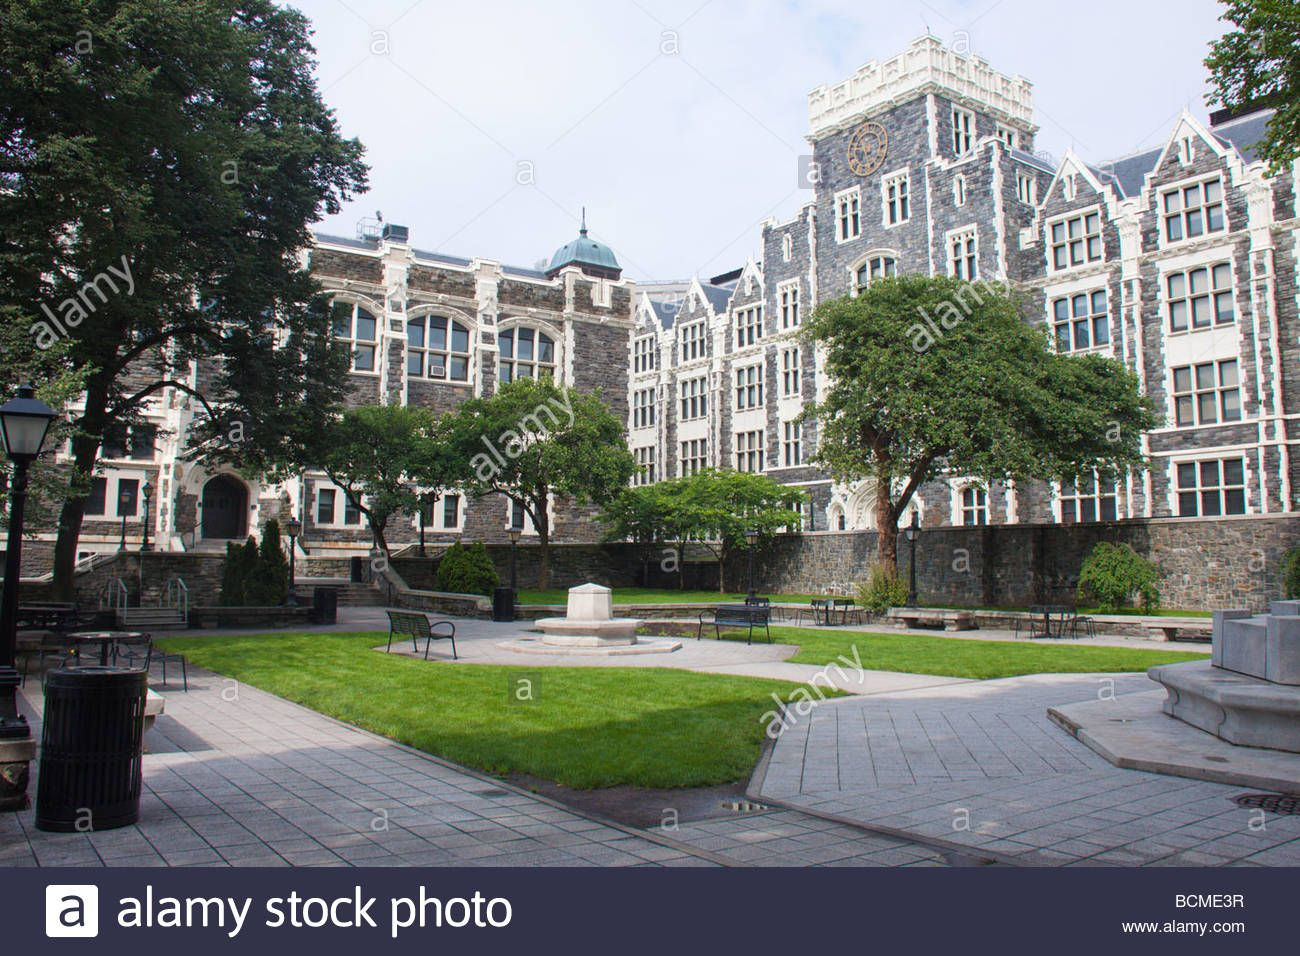 Download This Stock Image Campus Scene City College Of New York Ny Usa Bcme3r From Alamy S Library Of Millions Of High Re City College Photo Stock Photos